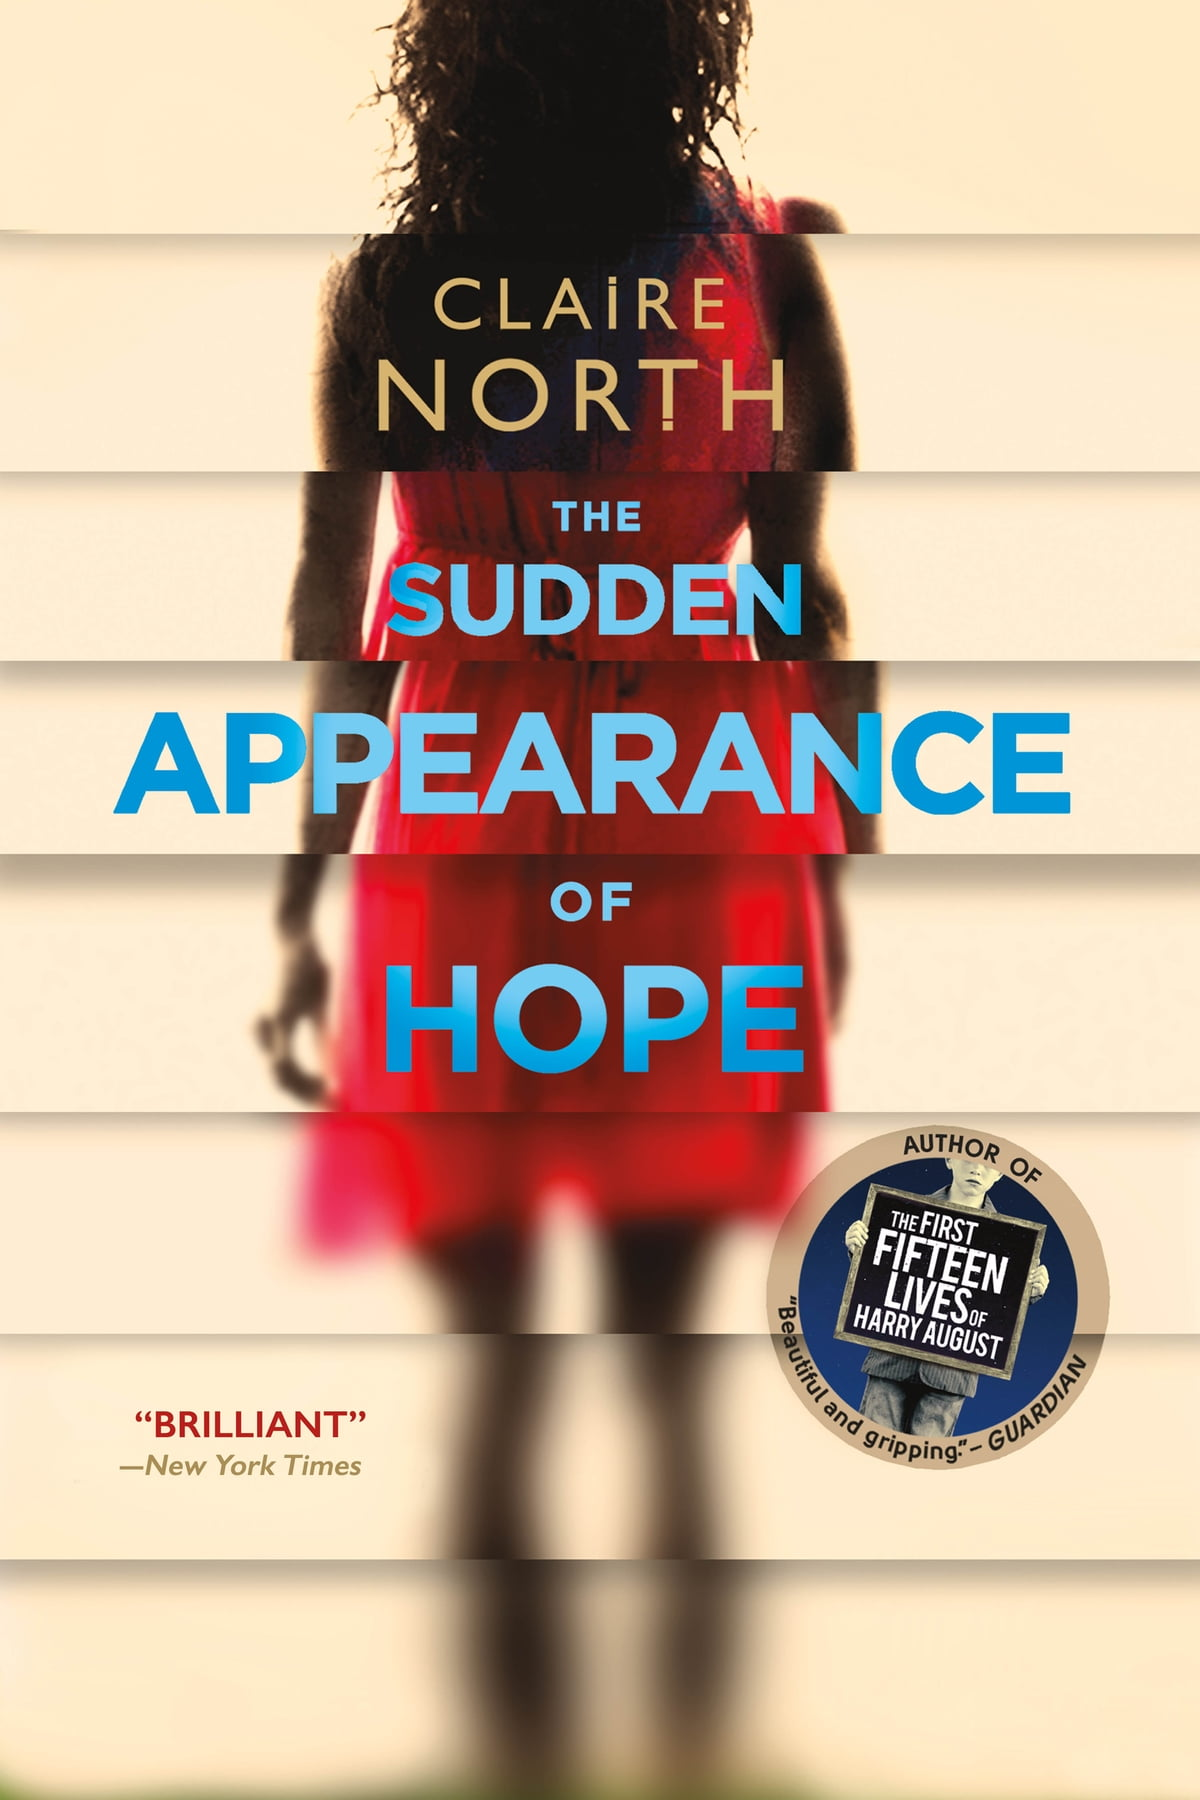 The Sudden Appearance Of Hope Ebook By Claire North  9780316335973  Kobo